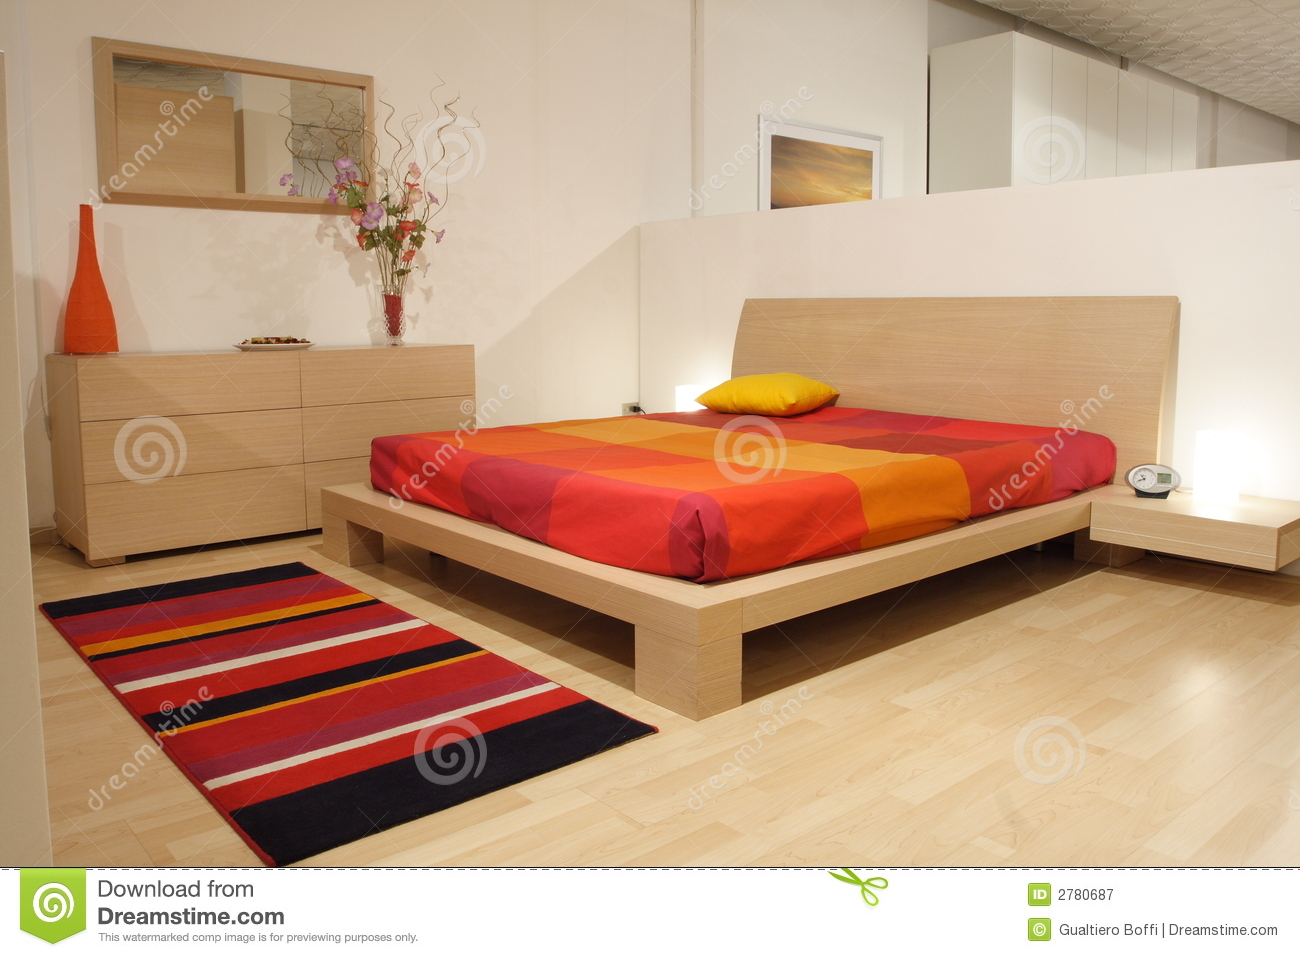 bedroom royalty free stock photography image 2780687